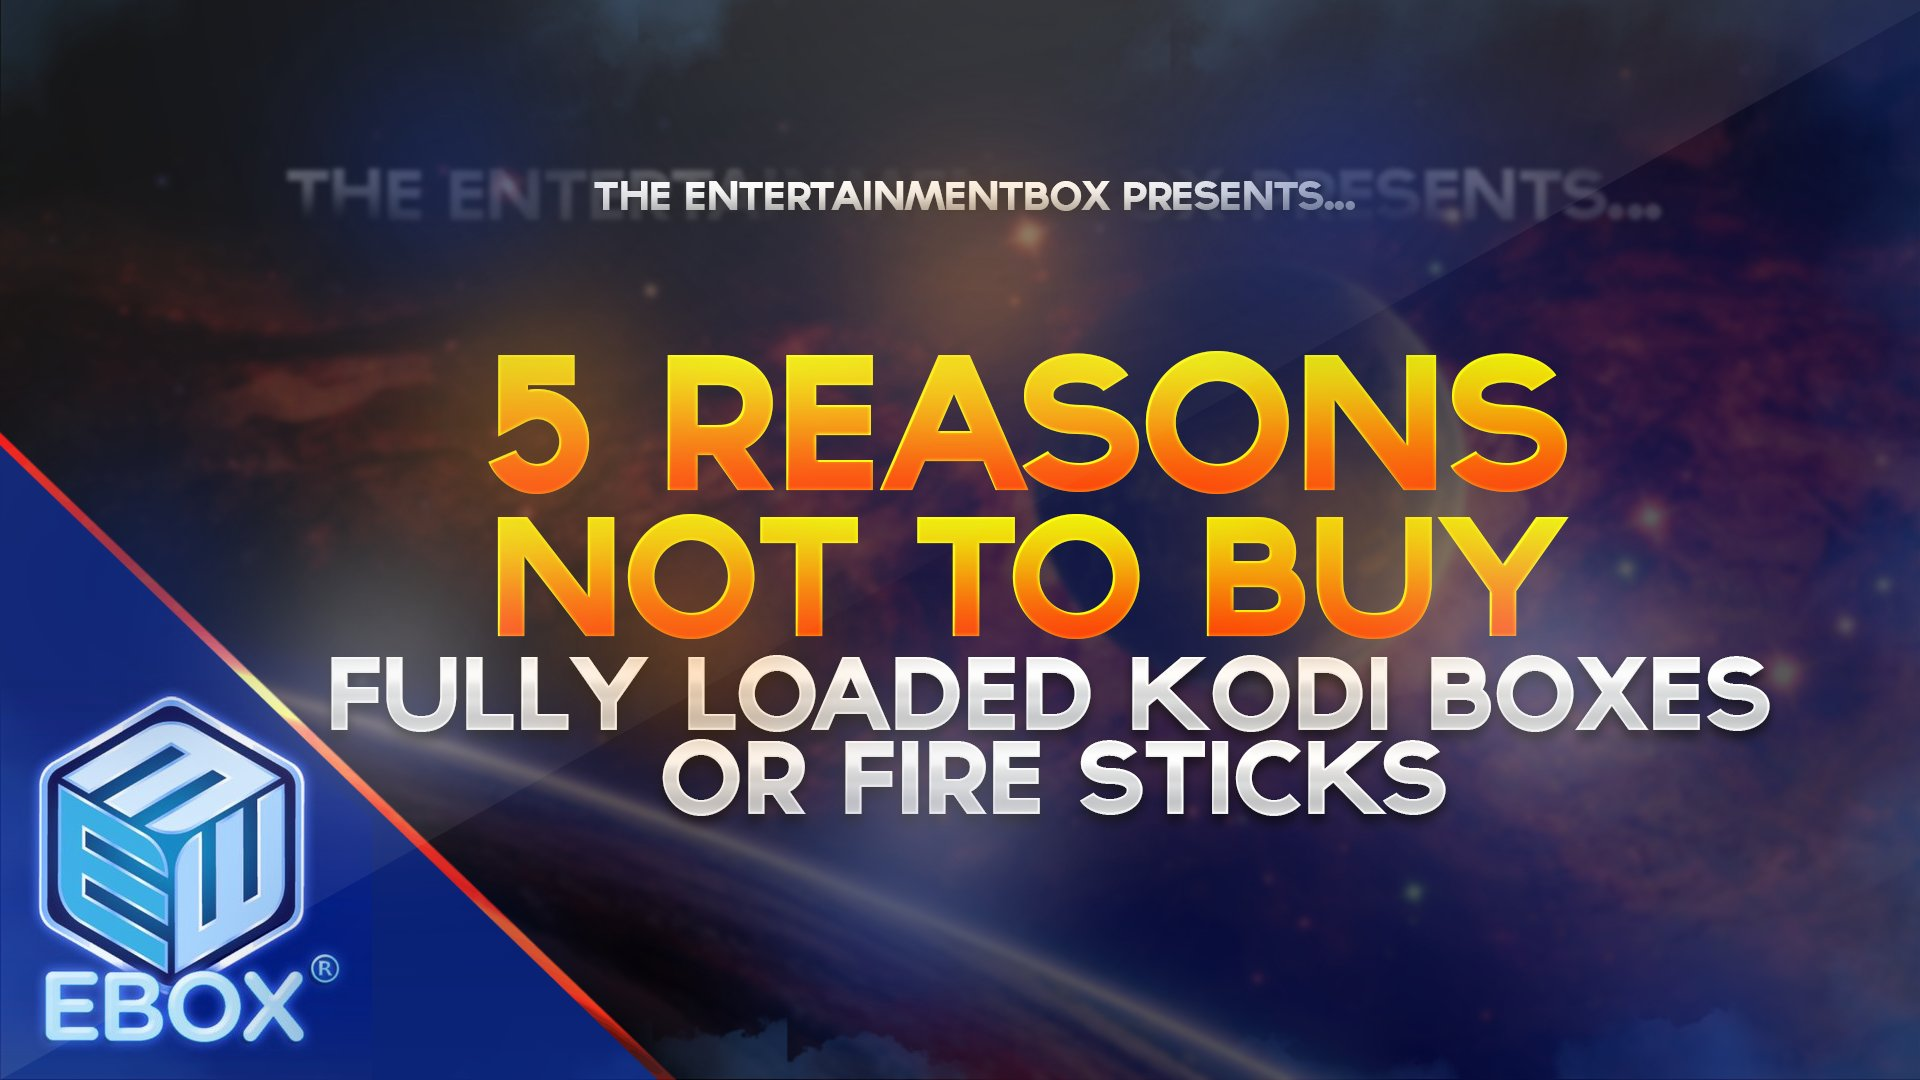 5 Reasons not to buy fully loaded Kodi boxes or Fire Sticks